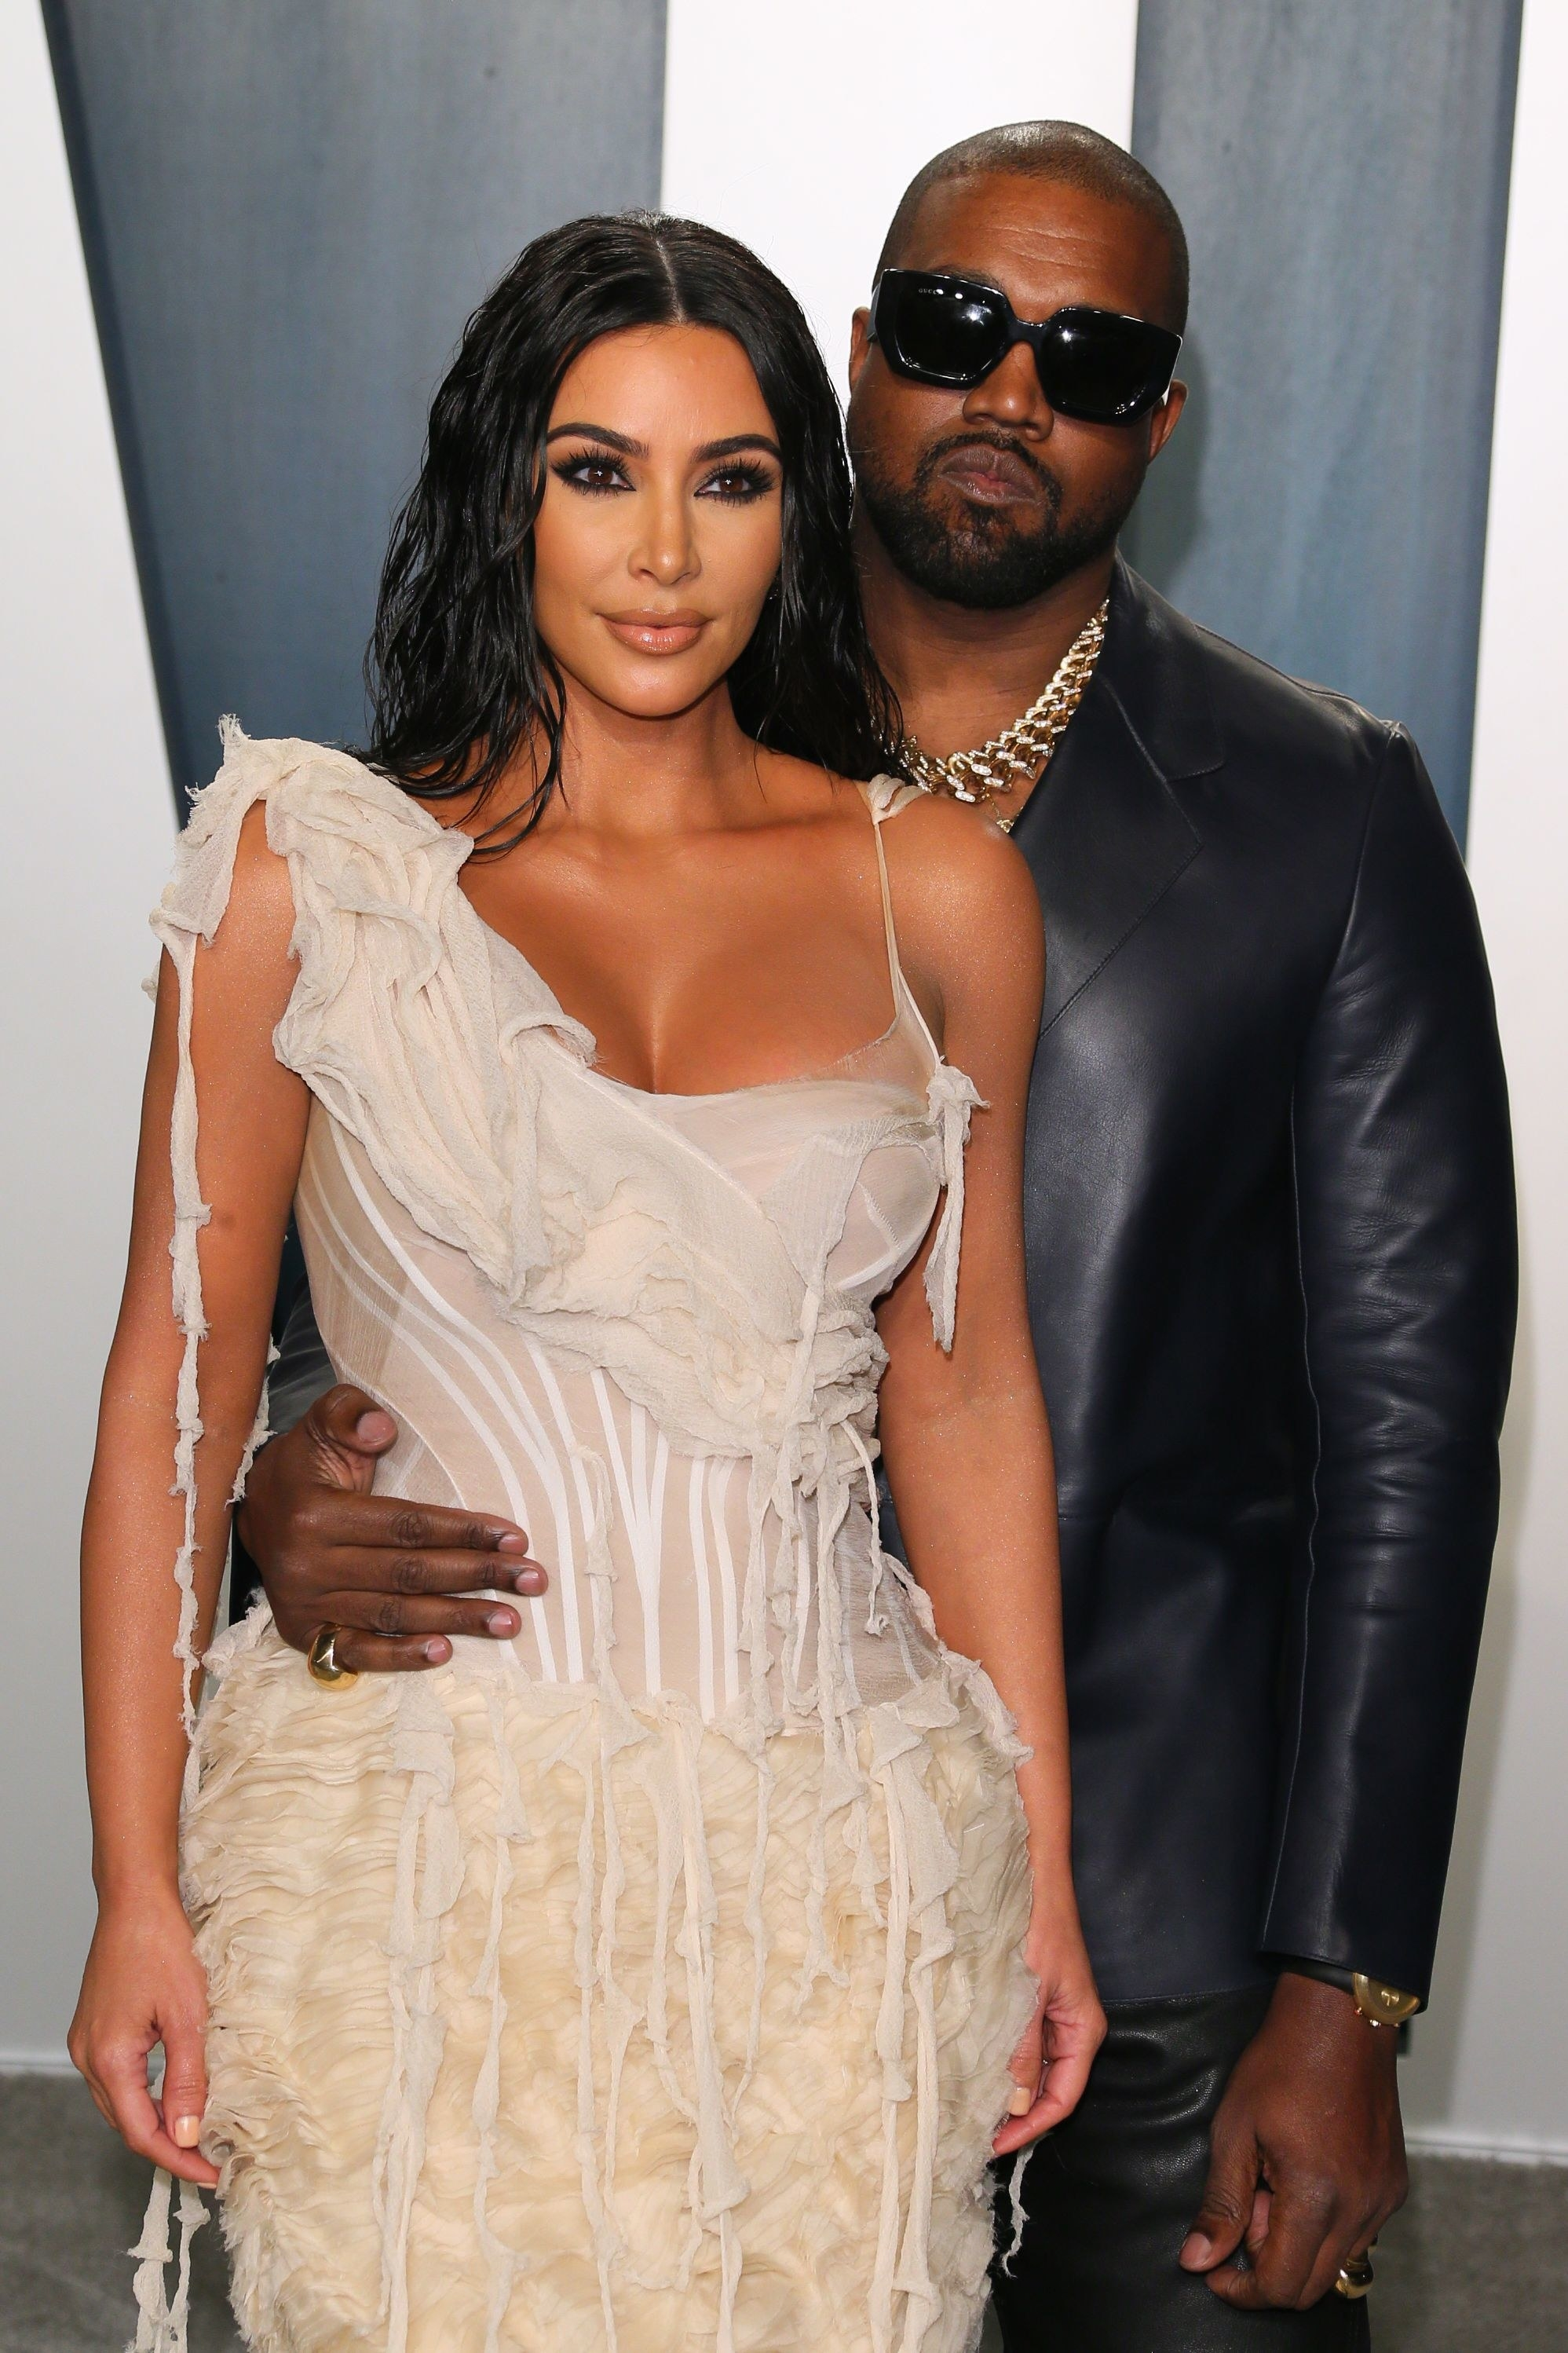 Kim and Kanye posing at a press event